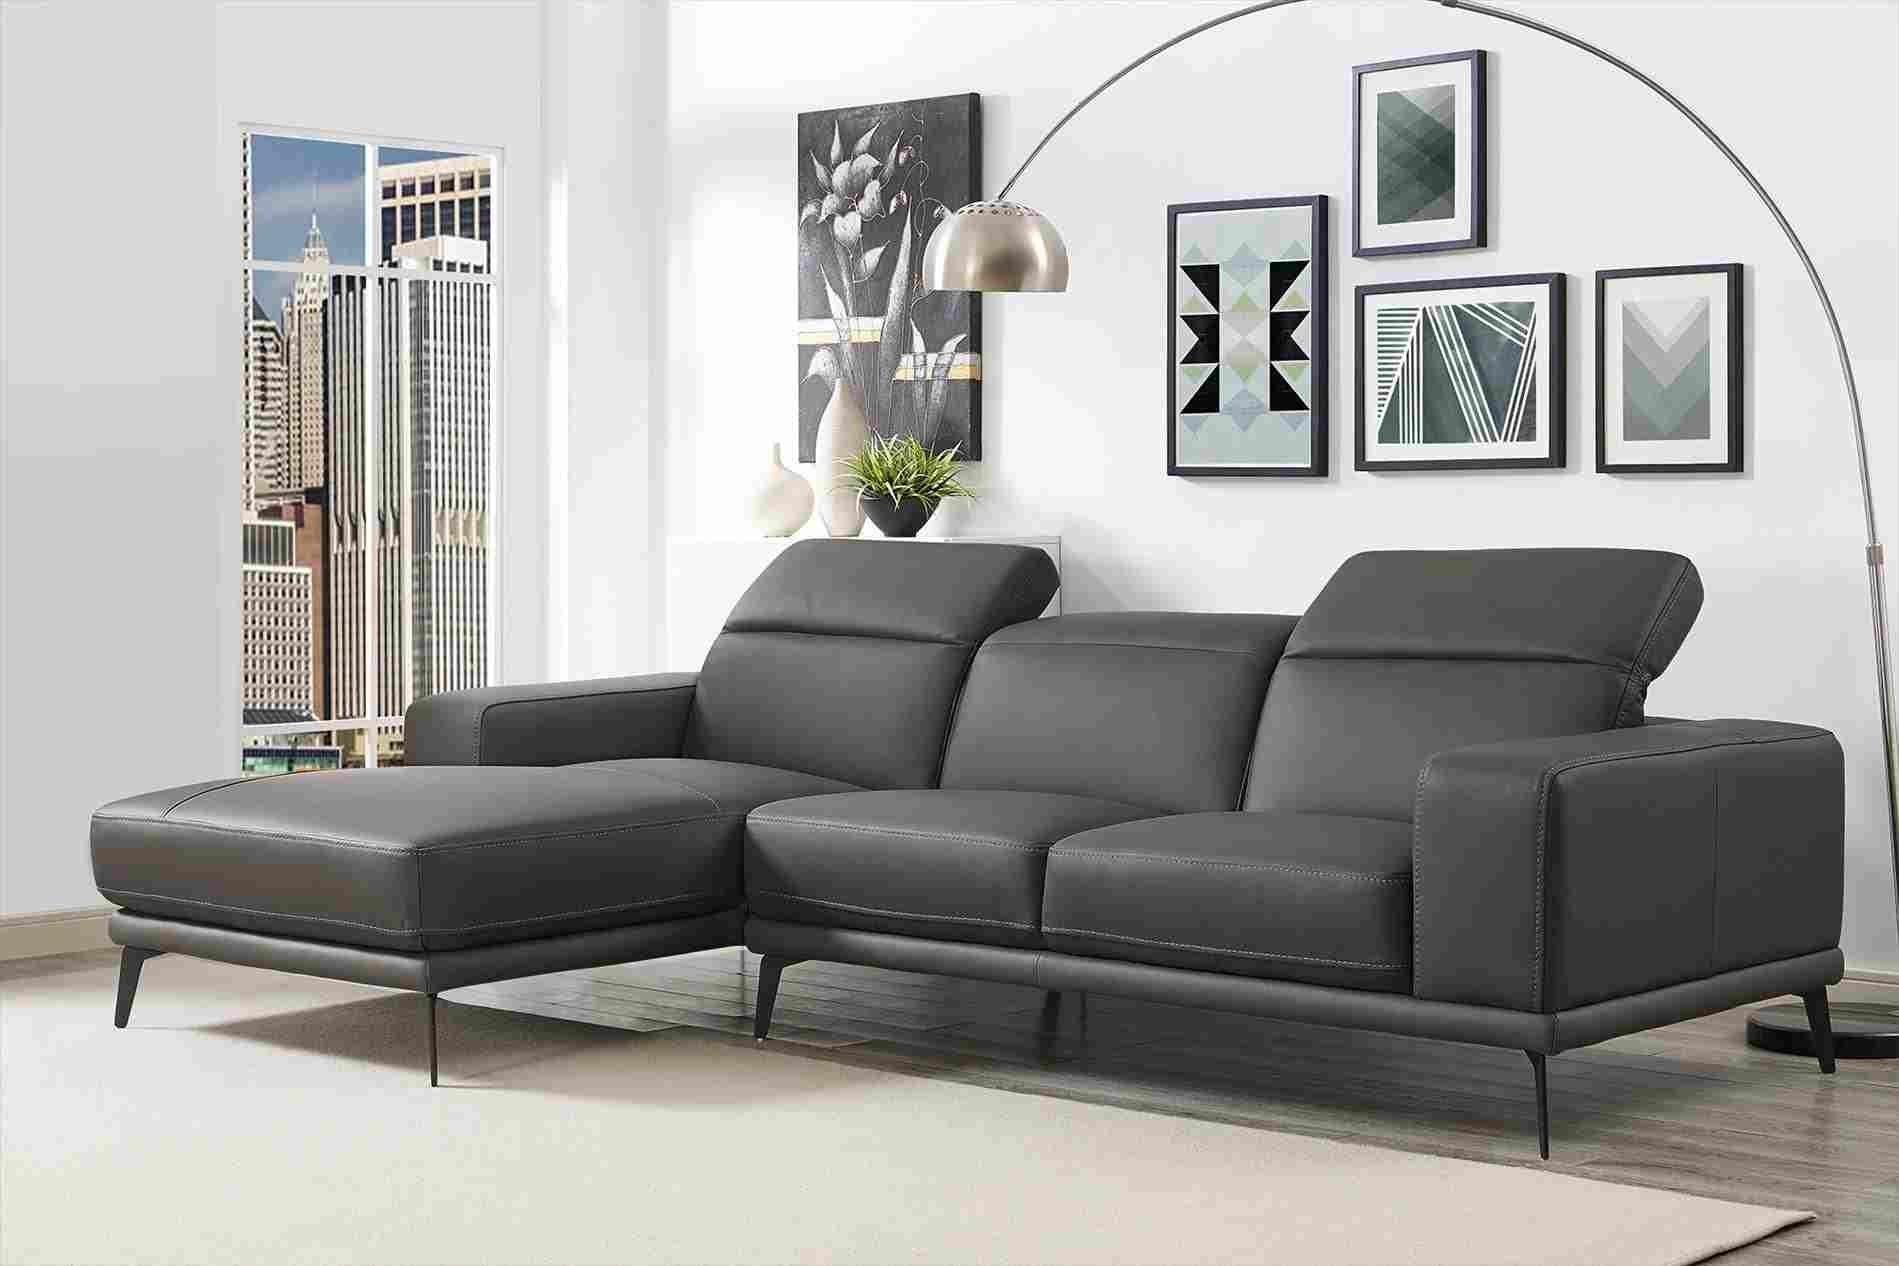 Cincinnatitaxi | Within Cosmos Grey 2 Piece Sectionals With Raf Chaise (View 7 of 25)